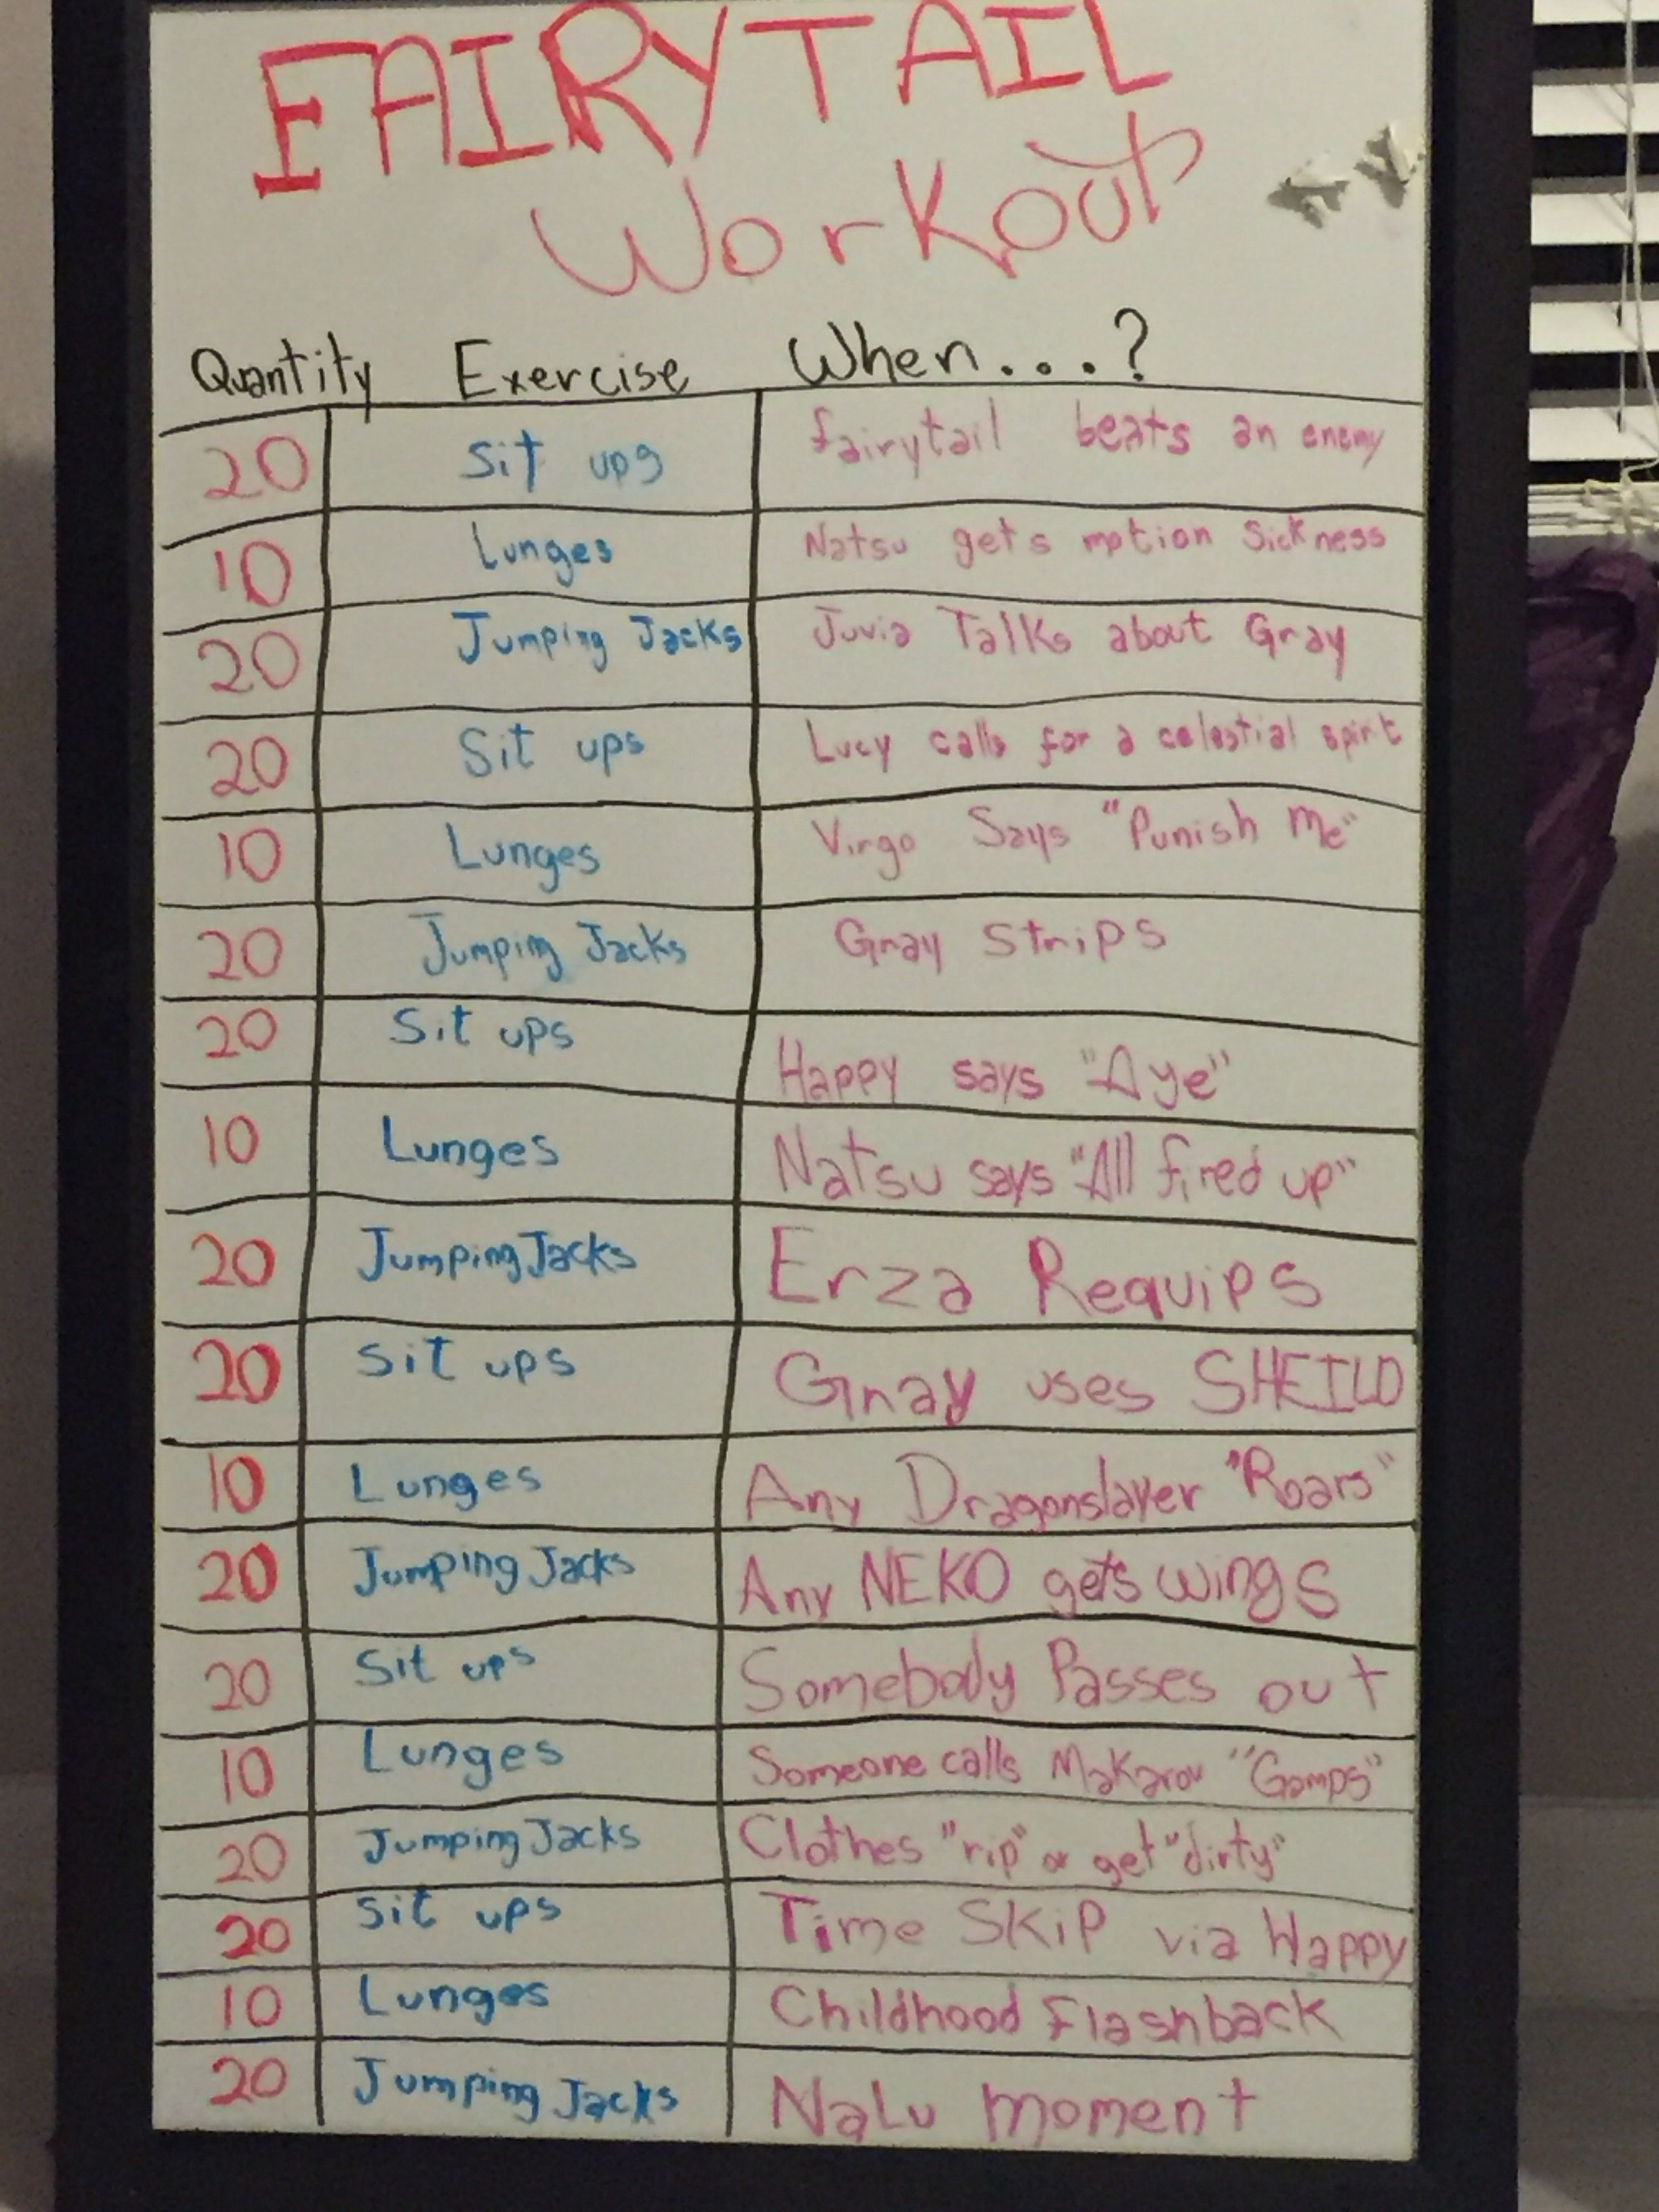 This Is How I Workout Fairytail Nalu Gruvia Erza Anime Exercise Fit Workout Body Workout At Home Nerd Fitness Tv Workouts